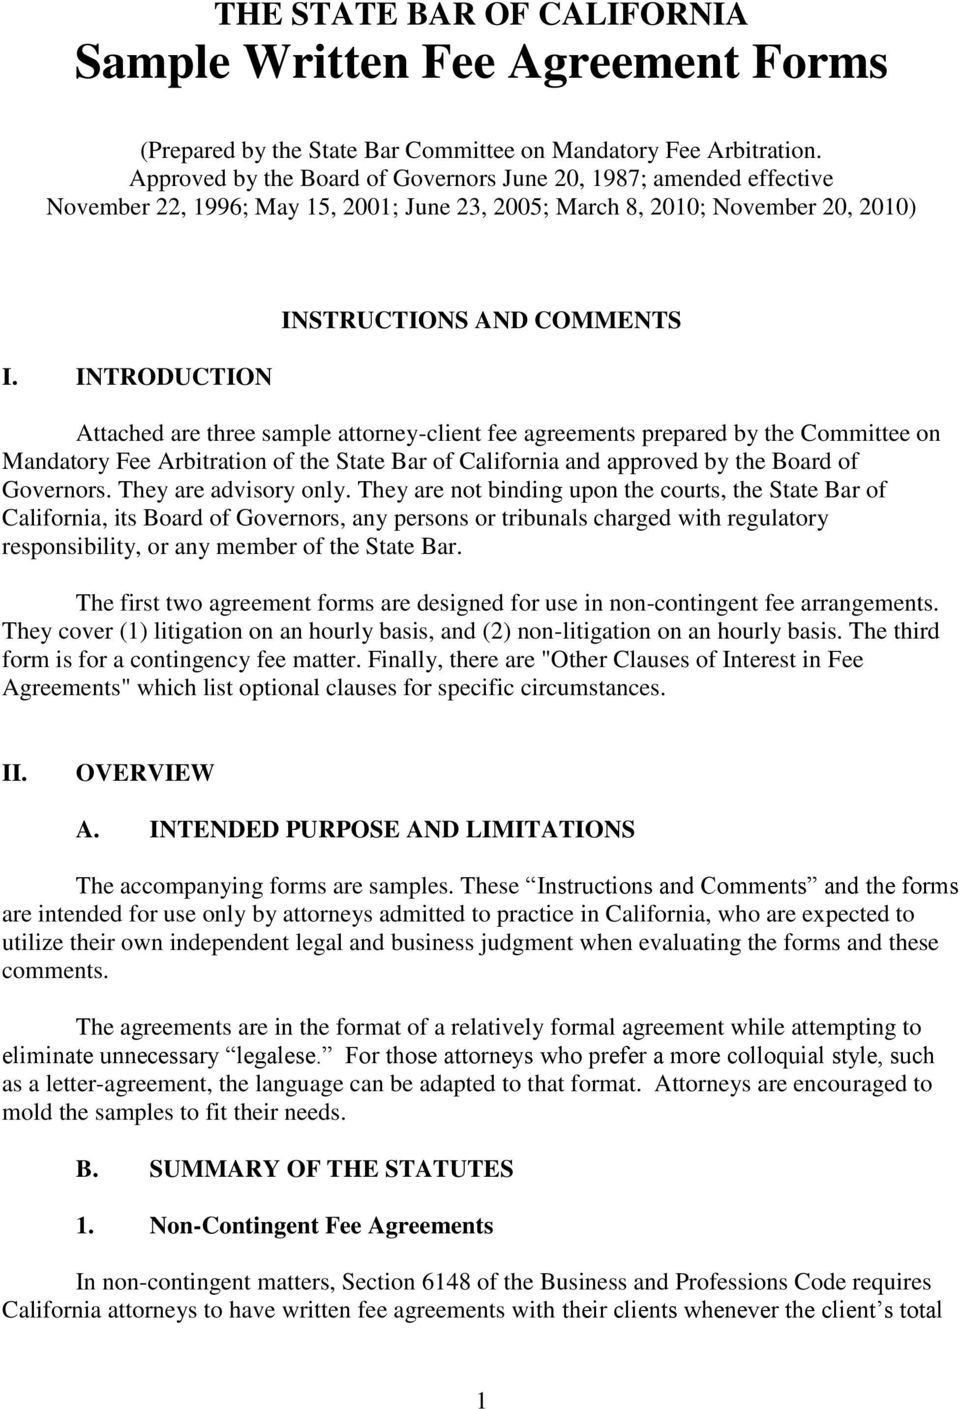 The State Bar Of California Sample Written Fee Agreement